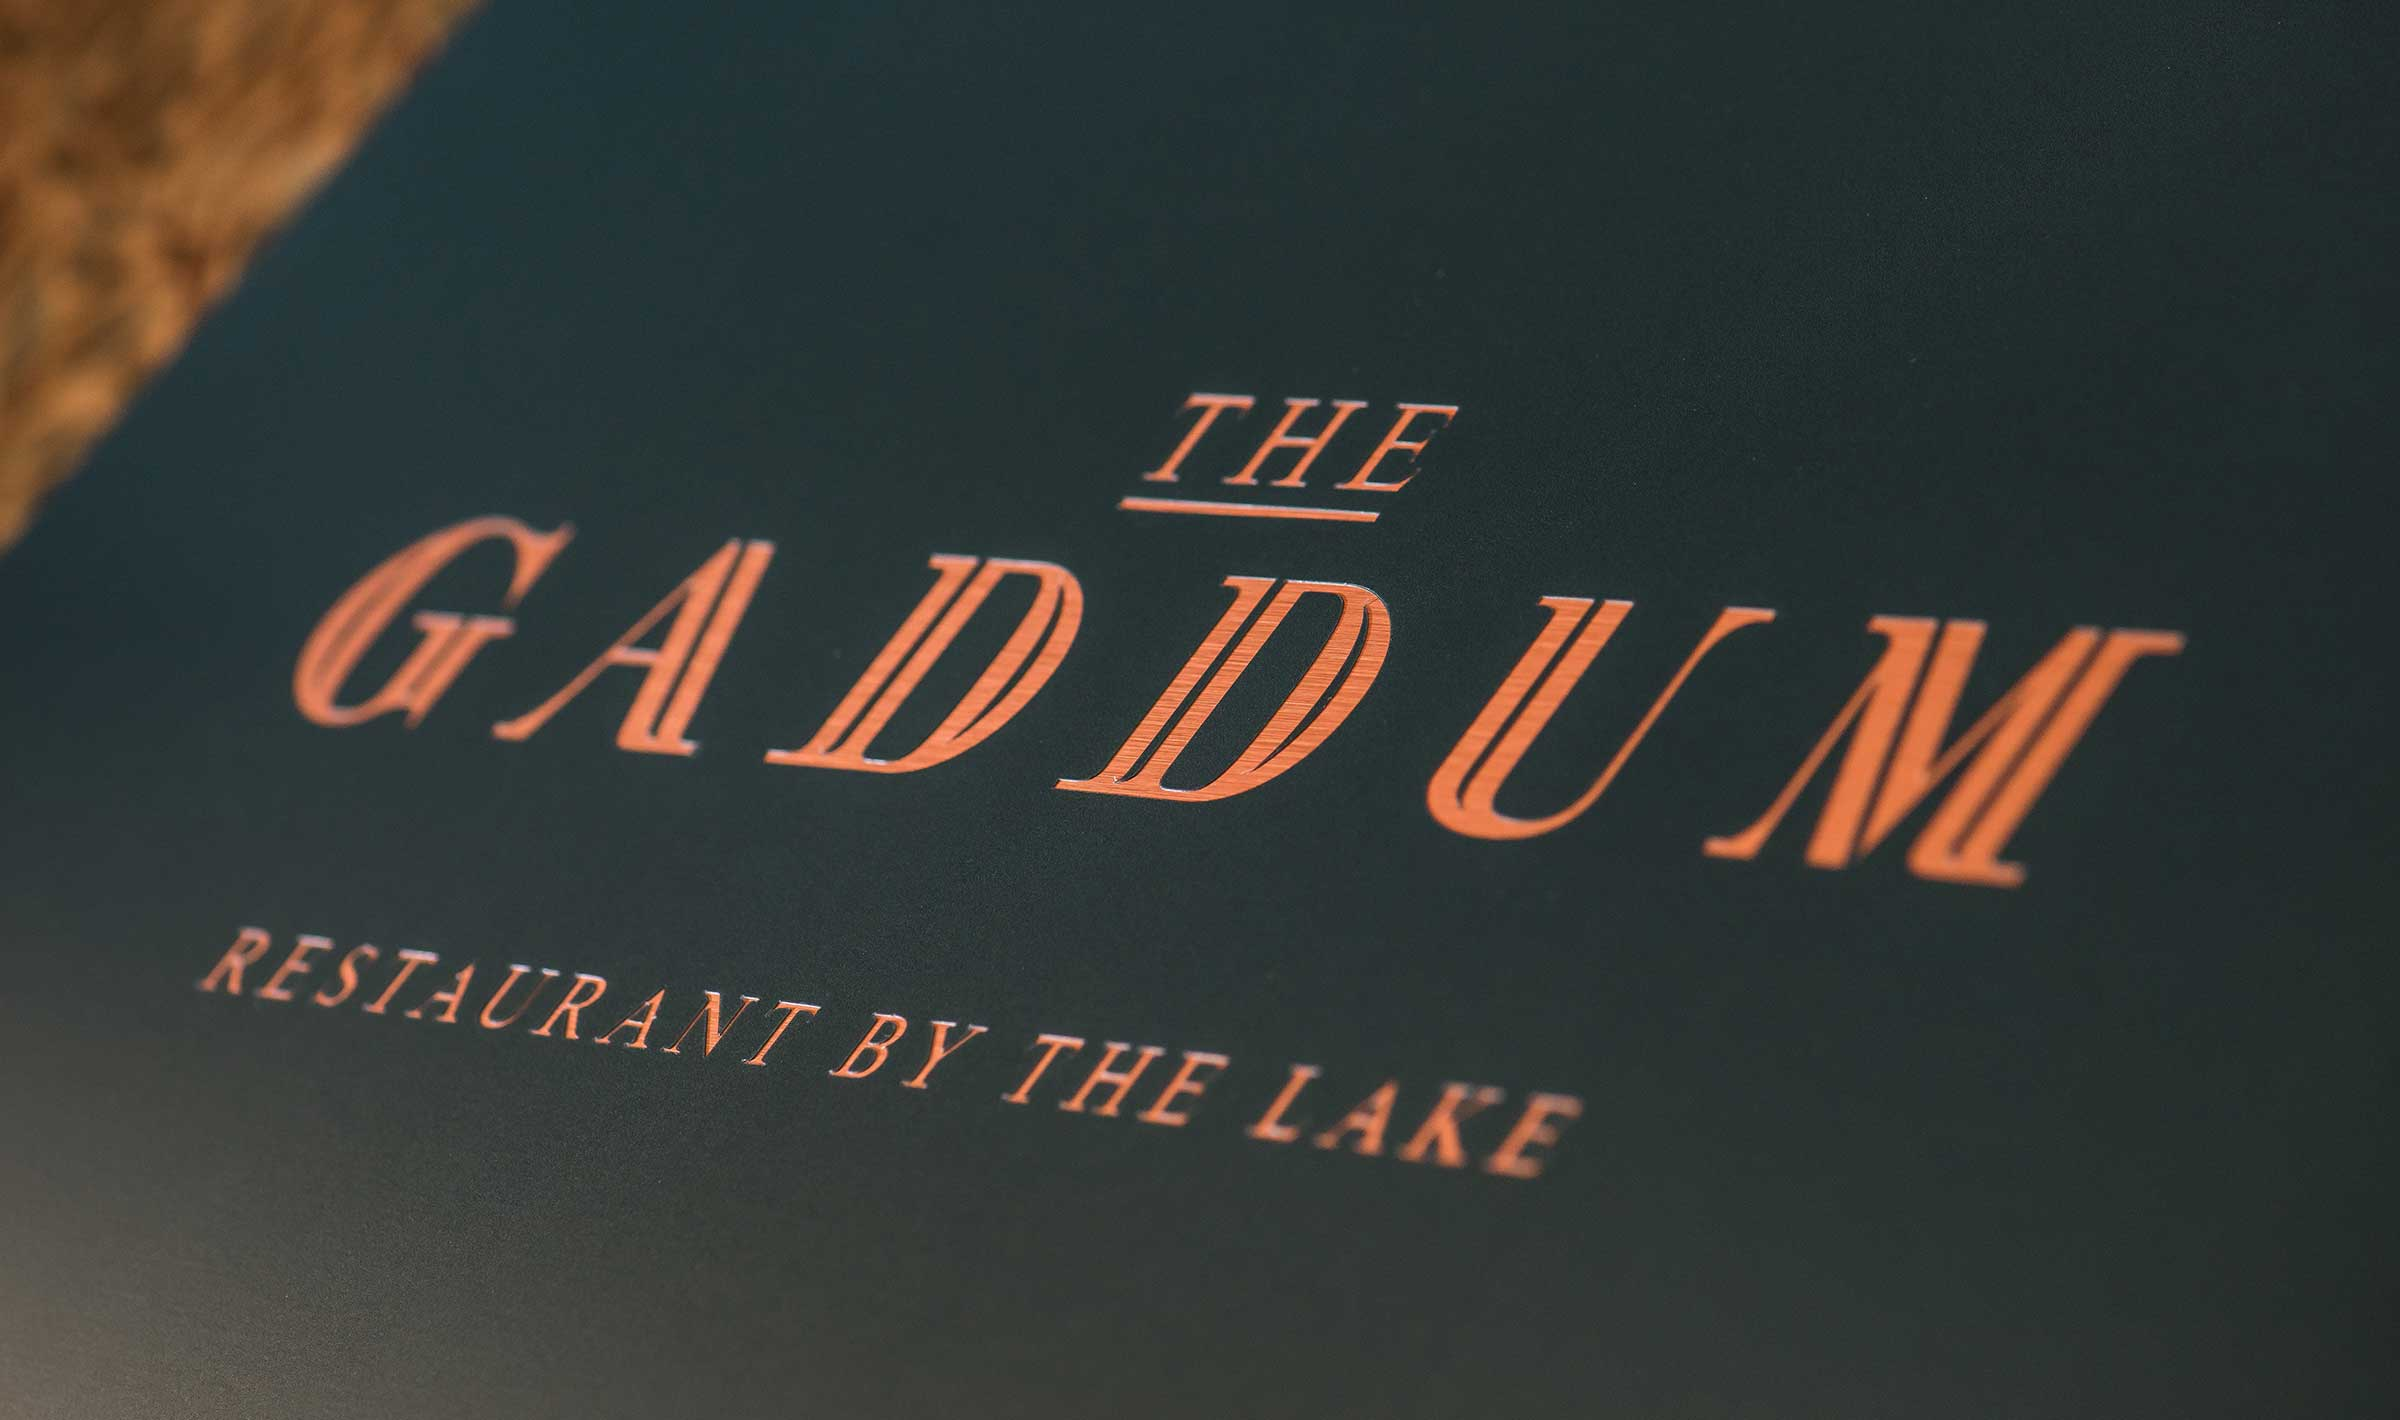 The Gaddum